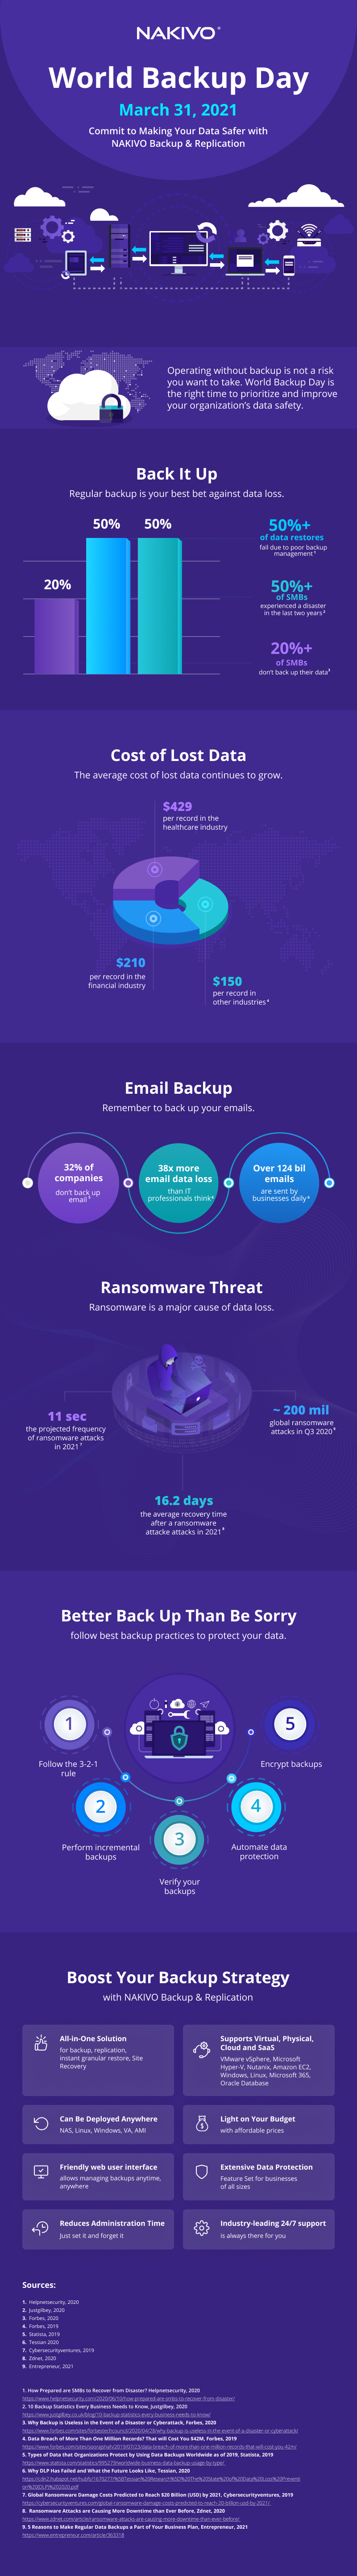 Infographic for World Backup Day_new